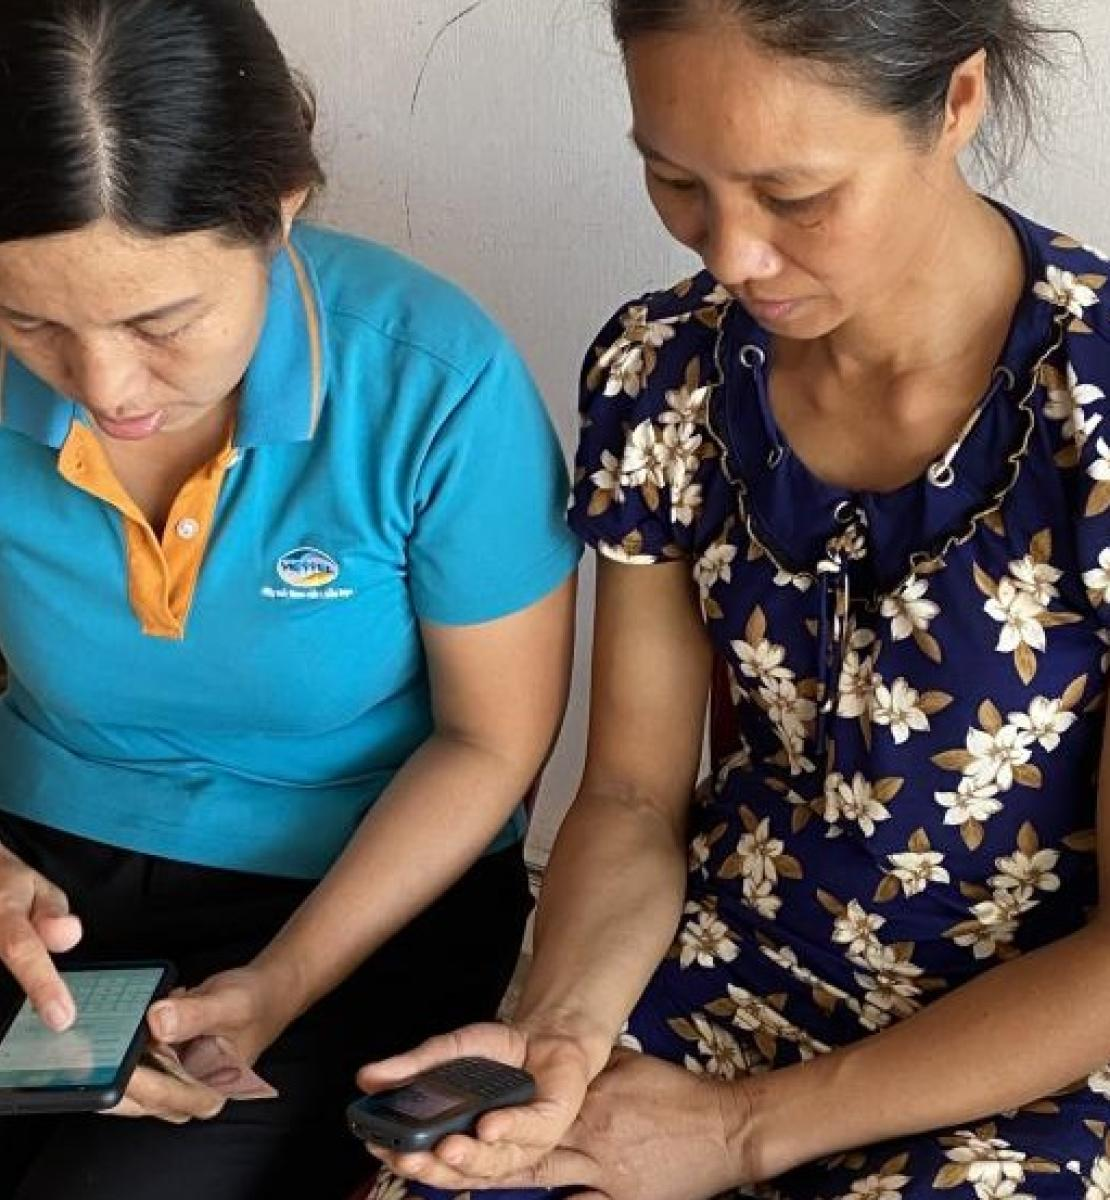 Mrs. Man (right) learns from Viettel Pay staff how to use e-payment technology on her phone to receive Government's Social Assistance package for COVID-19